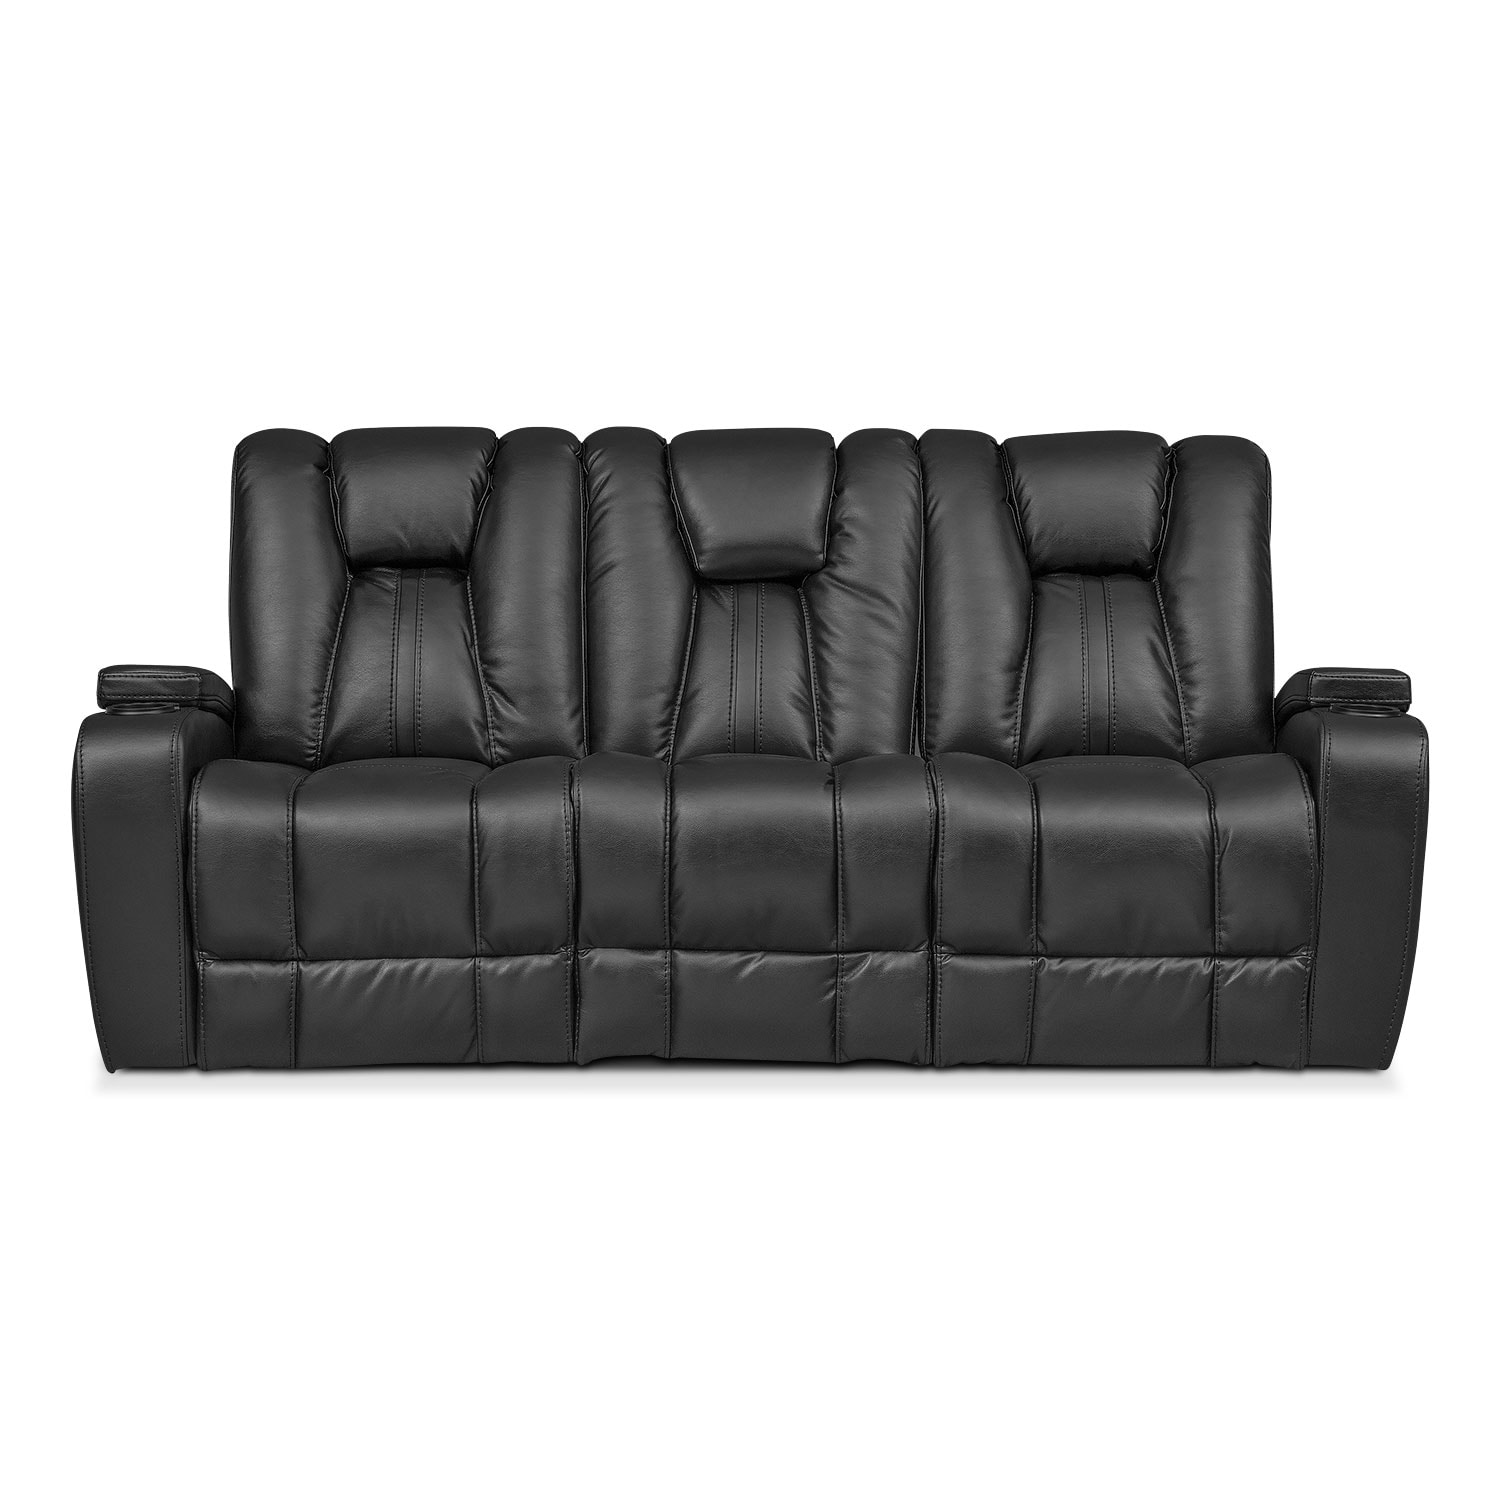 Pulsar Dual Power Reclining Sofa - Black by One80  sc 1 st  Value City Furniture & Pulsar Dual Power Reclining Sofa - Black | Value City Furniture islam-shia.org